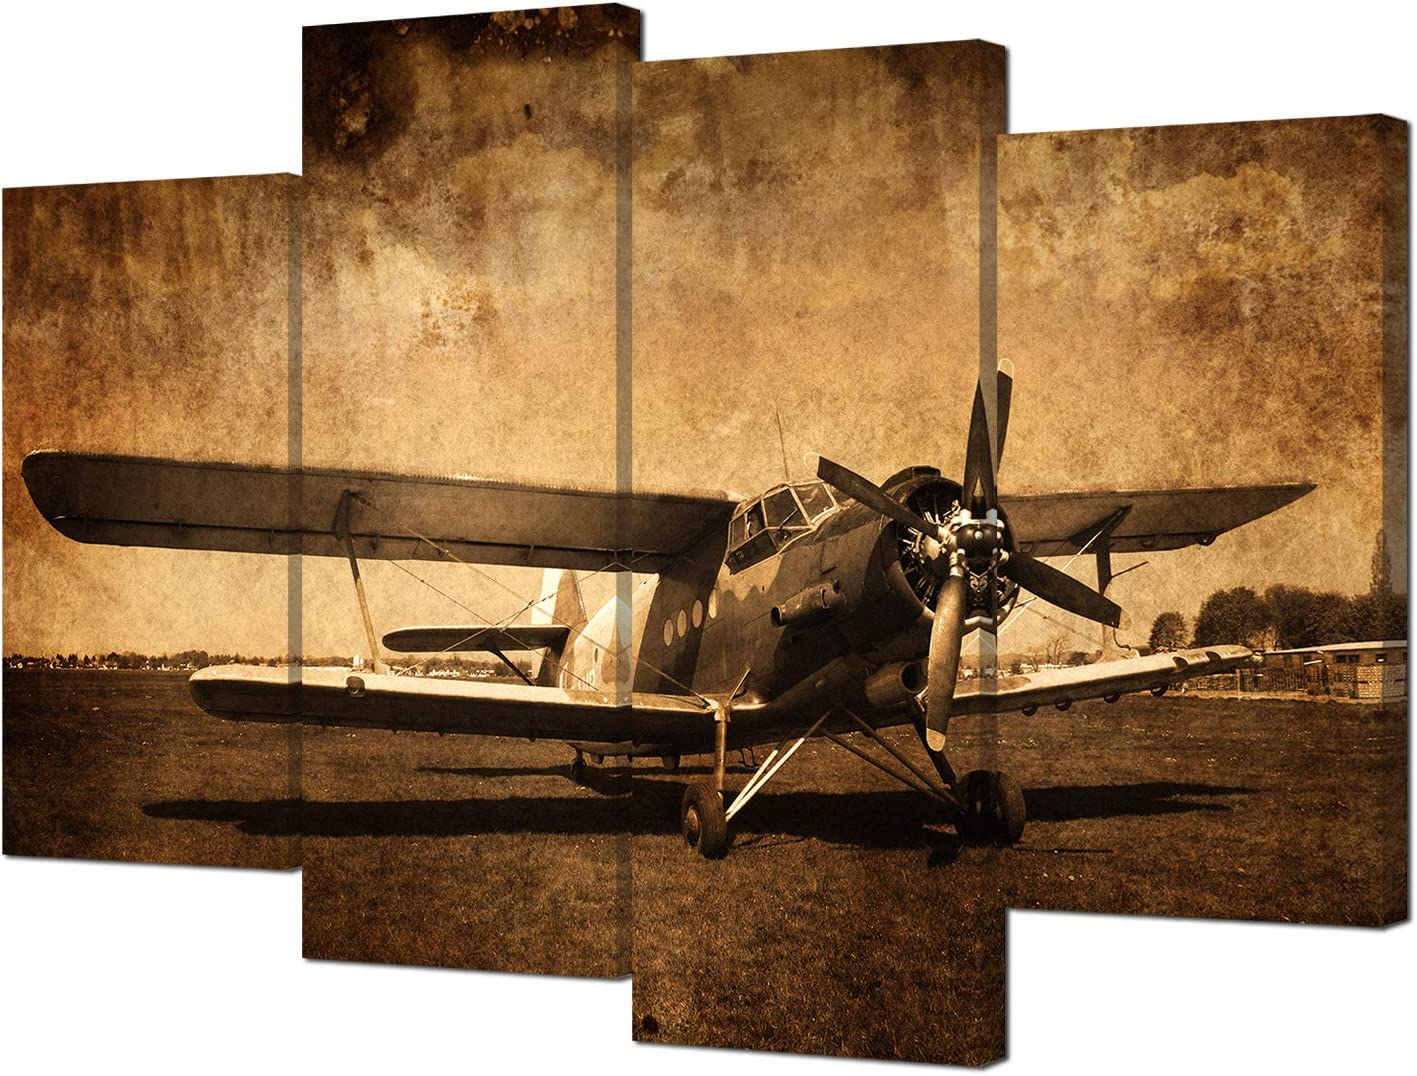 VVOVV Wall Decor Vintage Plane Picture Canvas Wall Art Prints Airplane Aircraft Poster Prints Large 4 Panels Boys Bedroom Decor